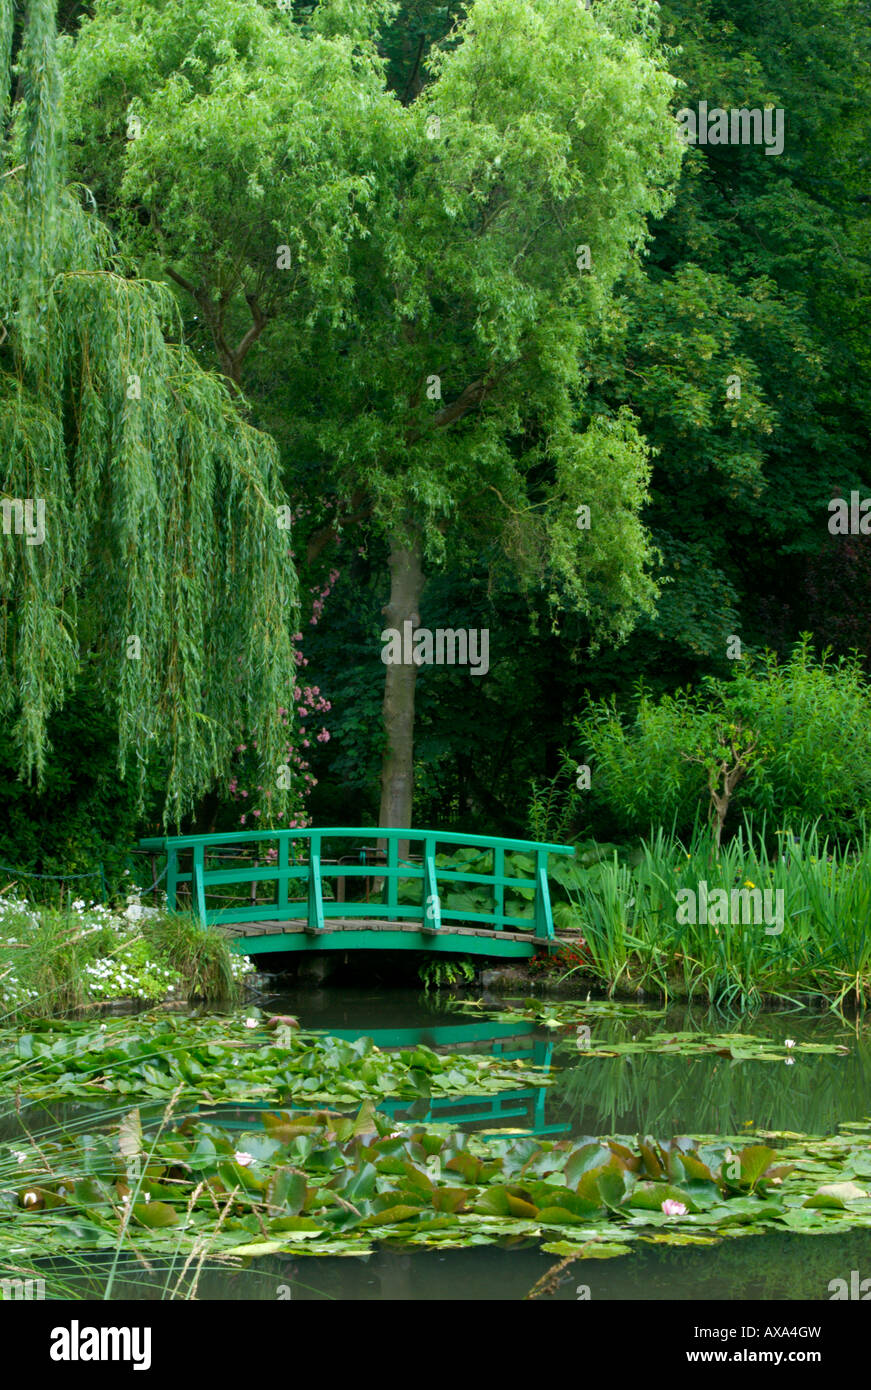 Wonderful Water Garden/Water Lily Pond With Japanese Bridge At Claude Monetu0027s House  And Gardens, Giverny, France